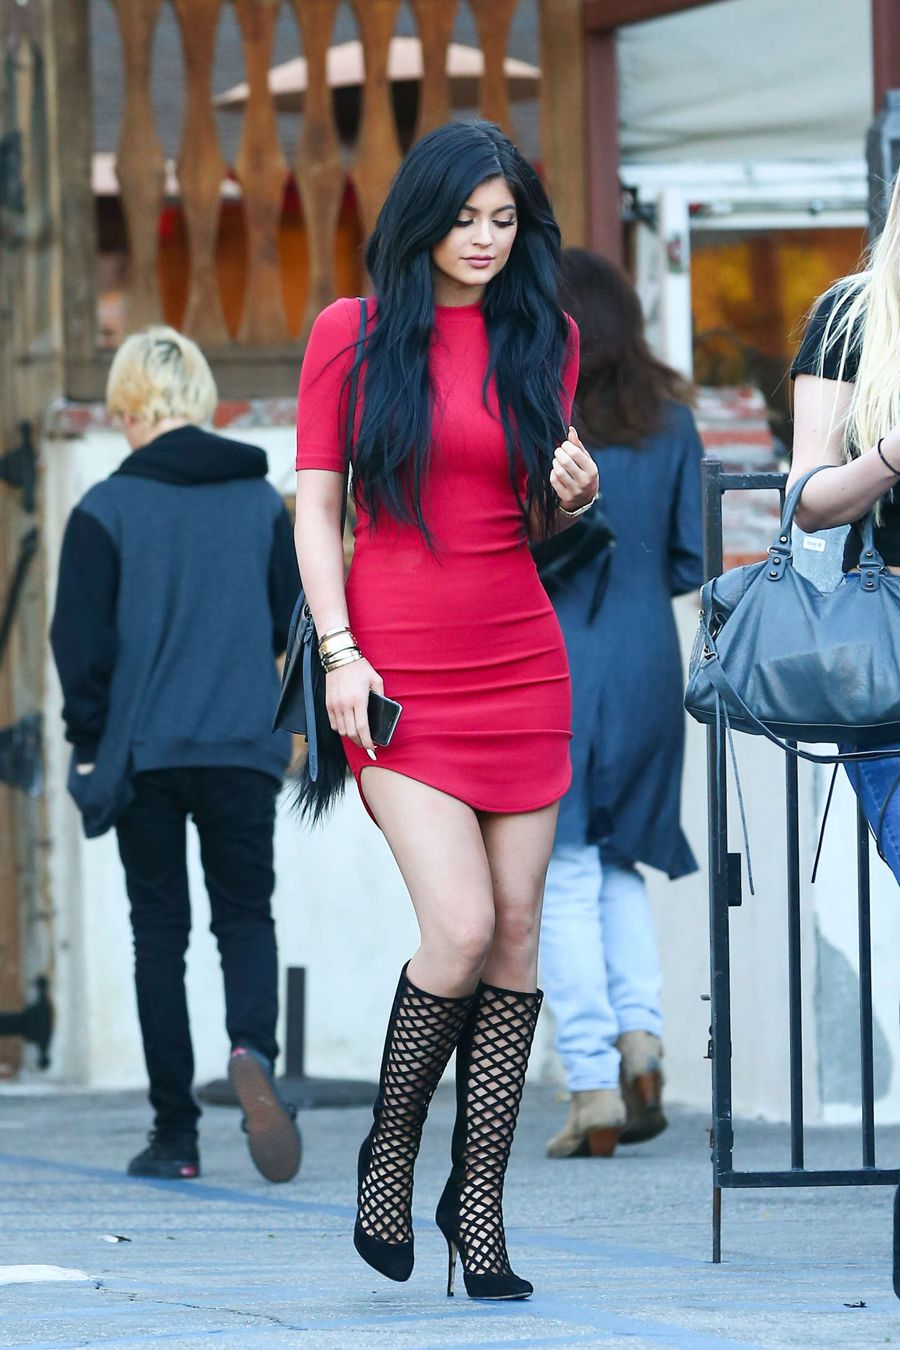 Kylie Jenner - Leaving Sagebrush Cantina in Calabasas